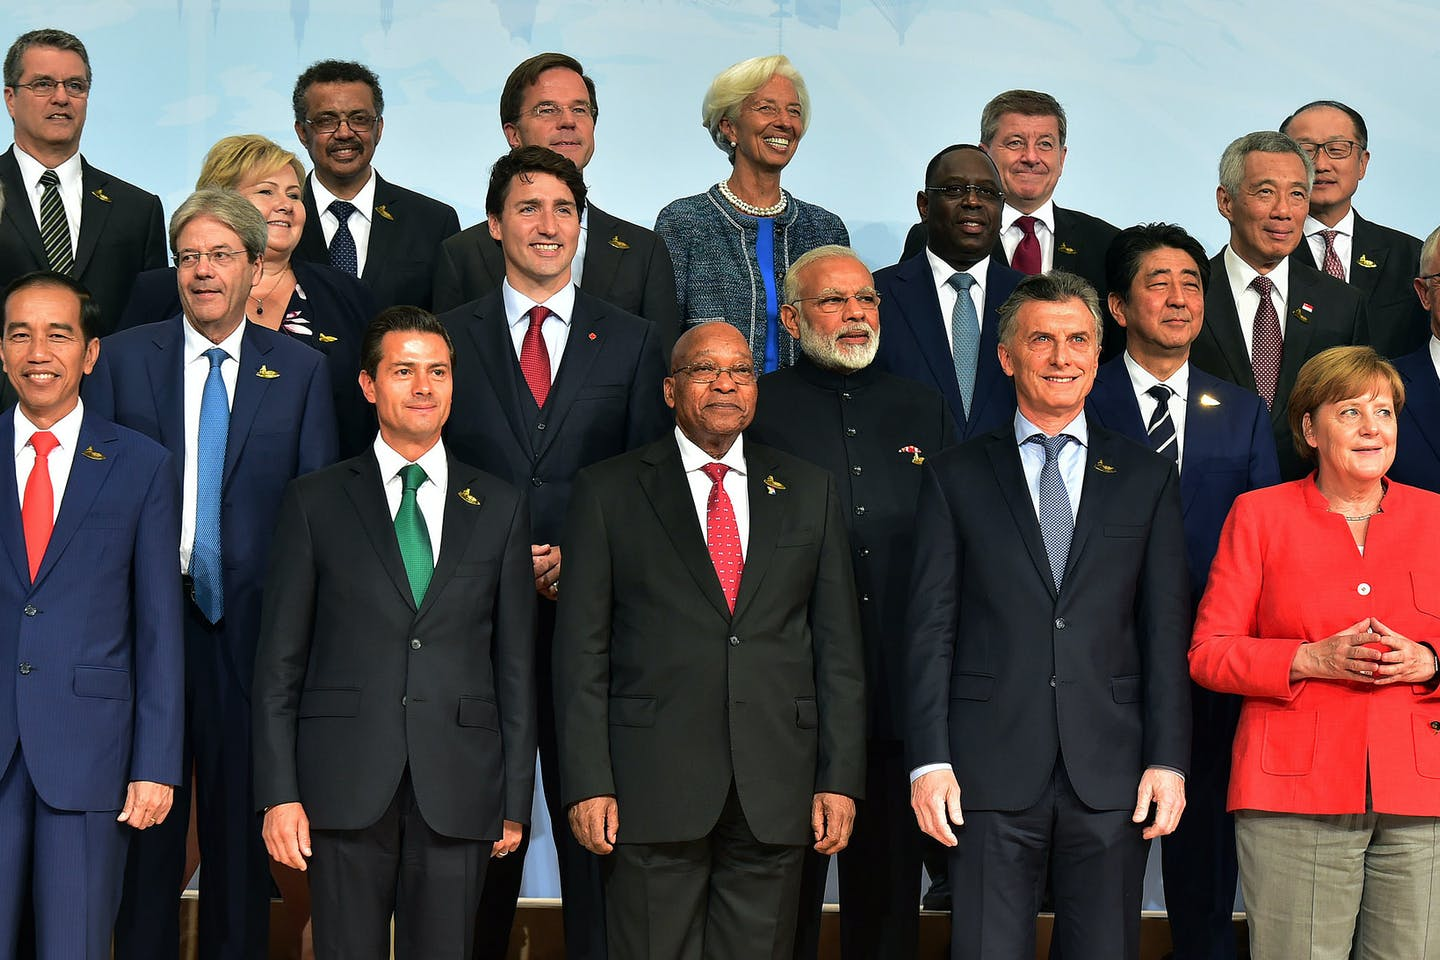 Leaders of the G20 at the 2017 summit in Hamburg, Germany